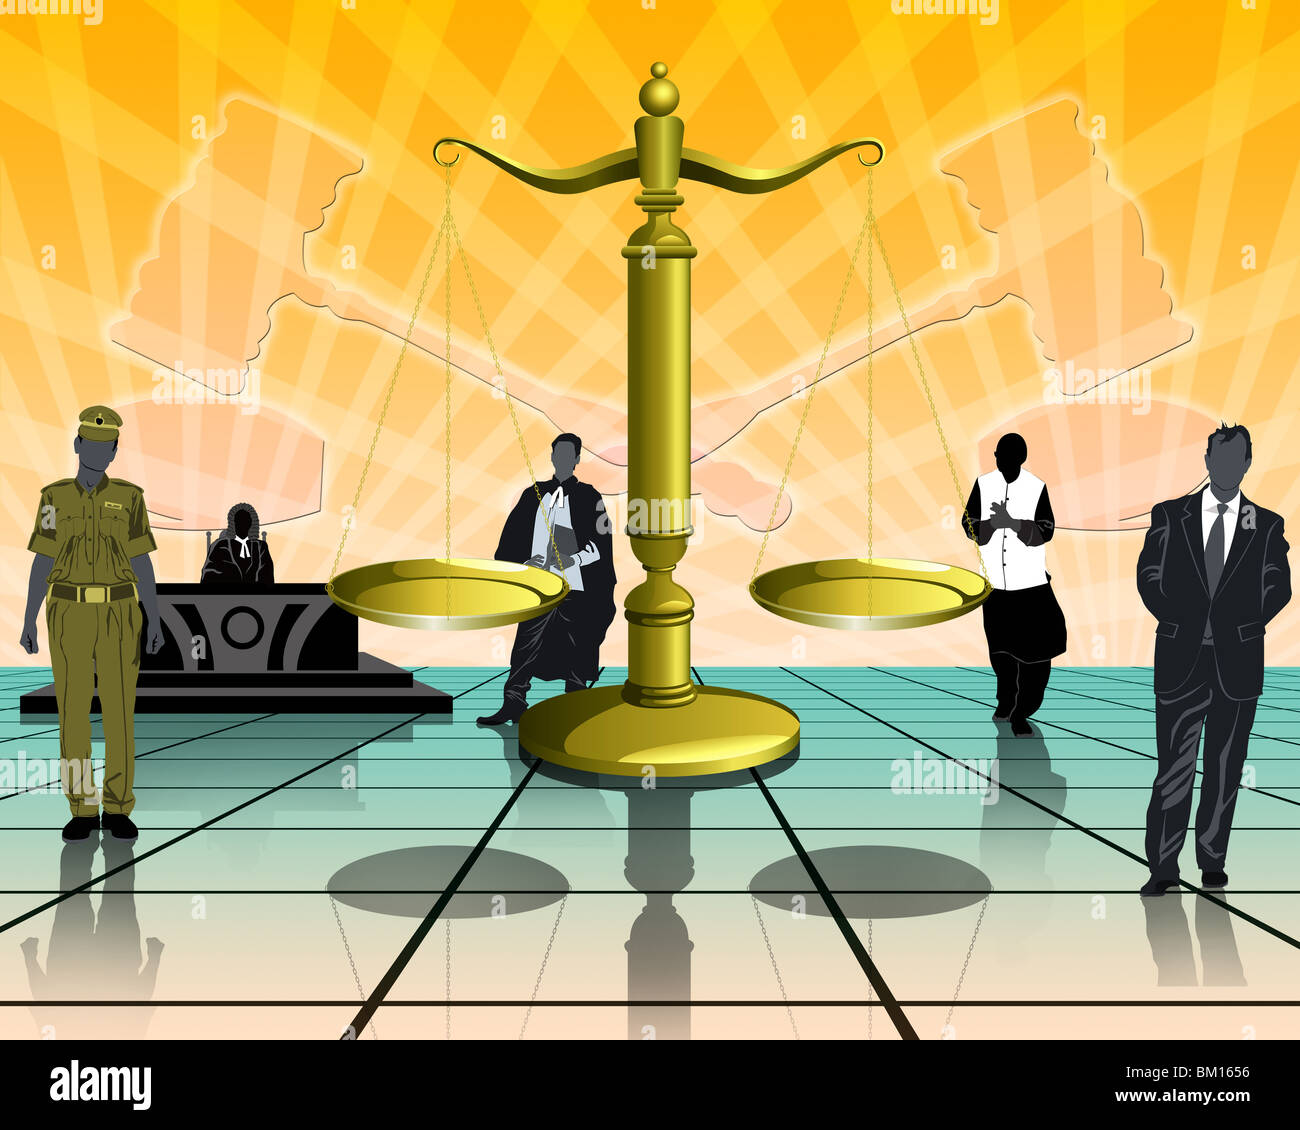 Illustrative representation of the legal system - Stock Image